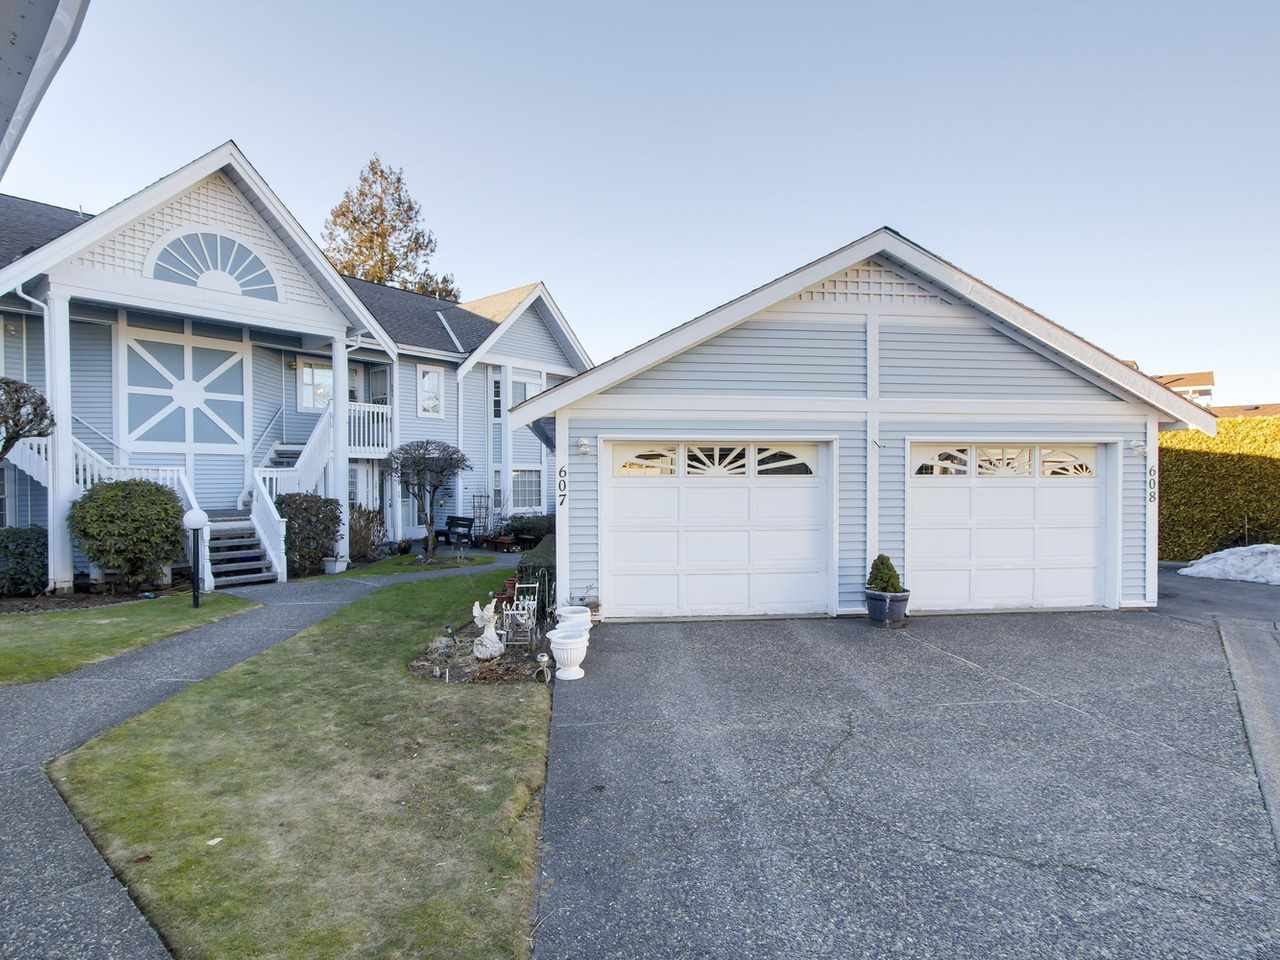 "Main Photo: 608 9131 154 Street in Surrey: Fleetwood Tynehead Townhouse for sale in ""Lexington Square"" : MLS® # R2136755"